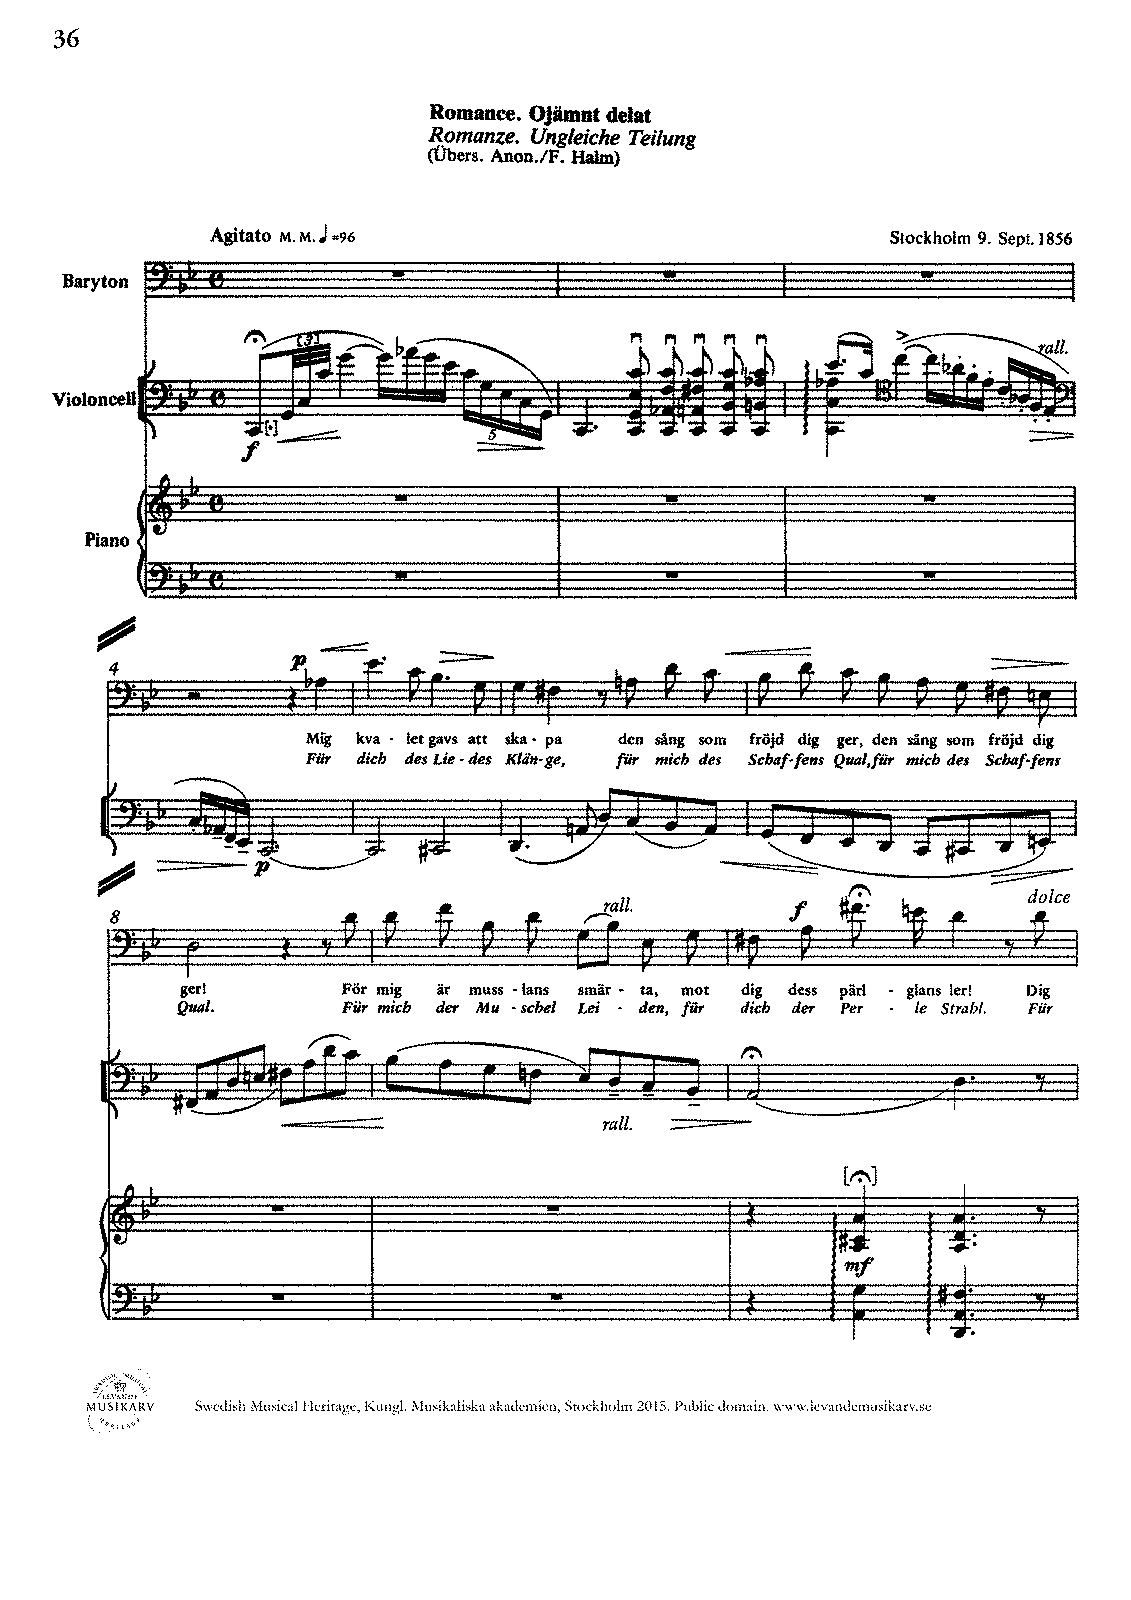 PMLP709520-38 songs Soderman August-Sanger-(voice piano)-(SMH-ed)-(SMH-M1023).pdf